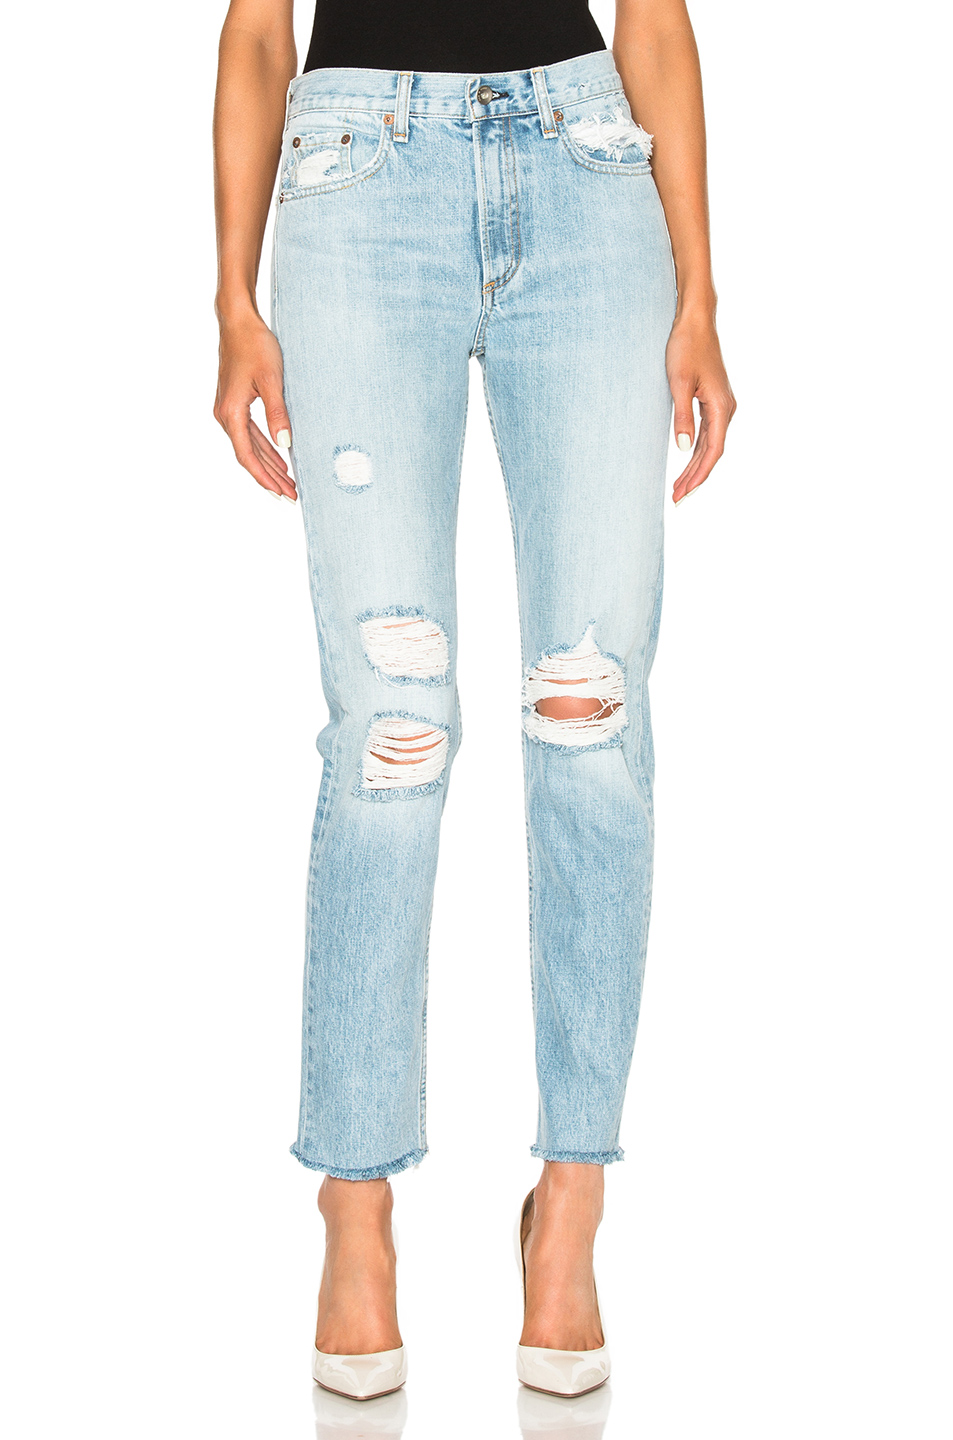 Rag & Bone/jean Woman Marilyn Distressed Boyfriend Jeans Light Denim Size 26 Rag & Bone Buy Cheap Get To Buy ISVLEUAL